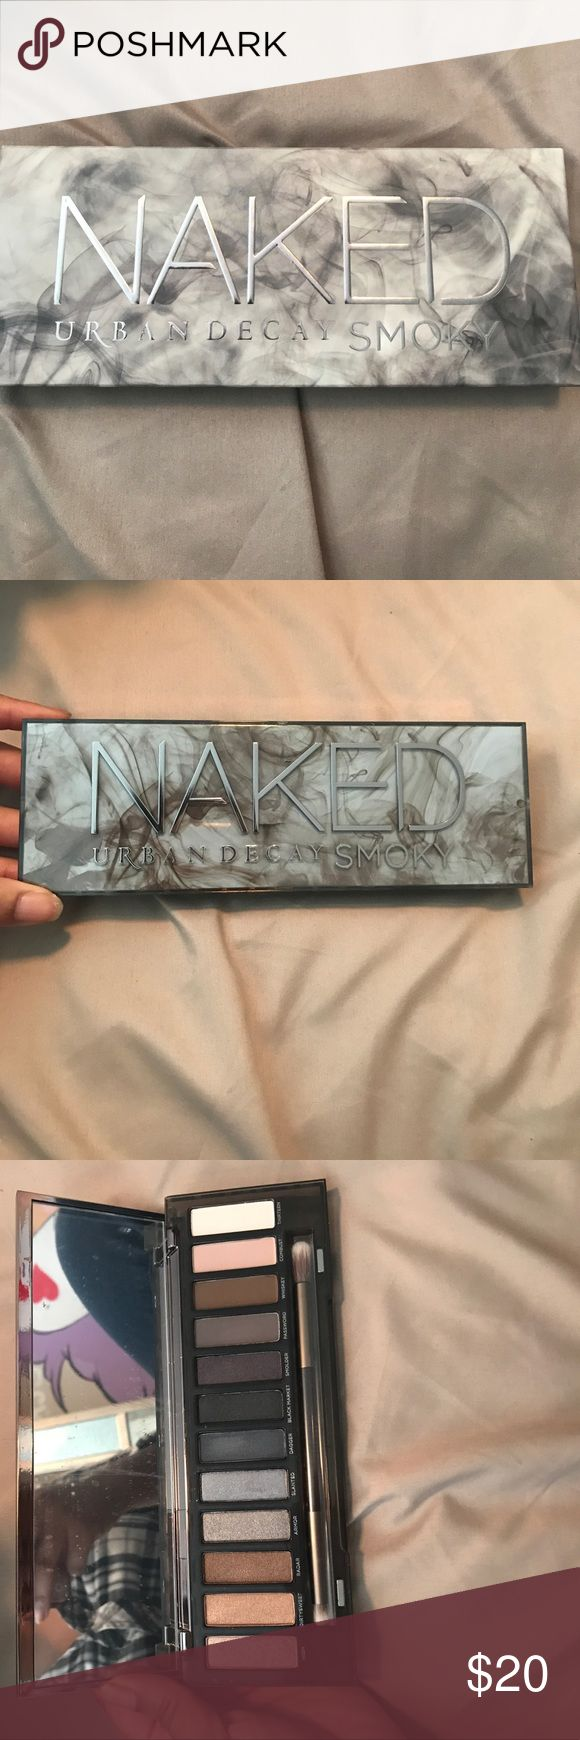 URBAN DECAY - Naked Smoky eyeshadow palette - NEW Brand new never used Urban Decay Naked Smoky eyeshadow palette. Film still on mirror. Shadow never swatched. Authentic Urban Decay Makeup Eyeshadow